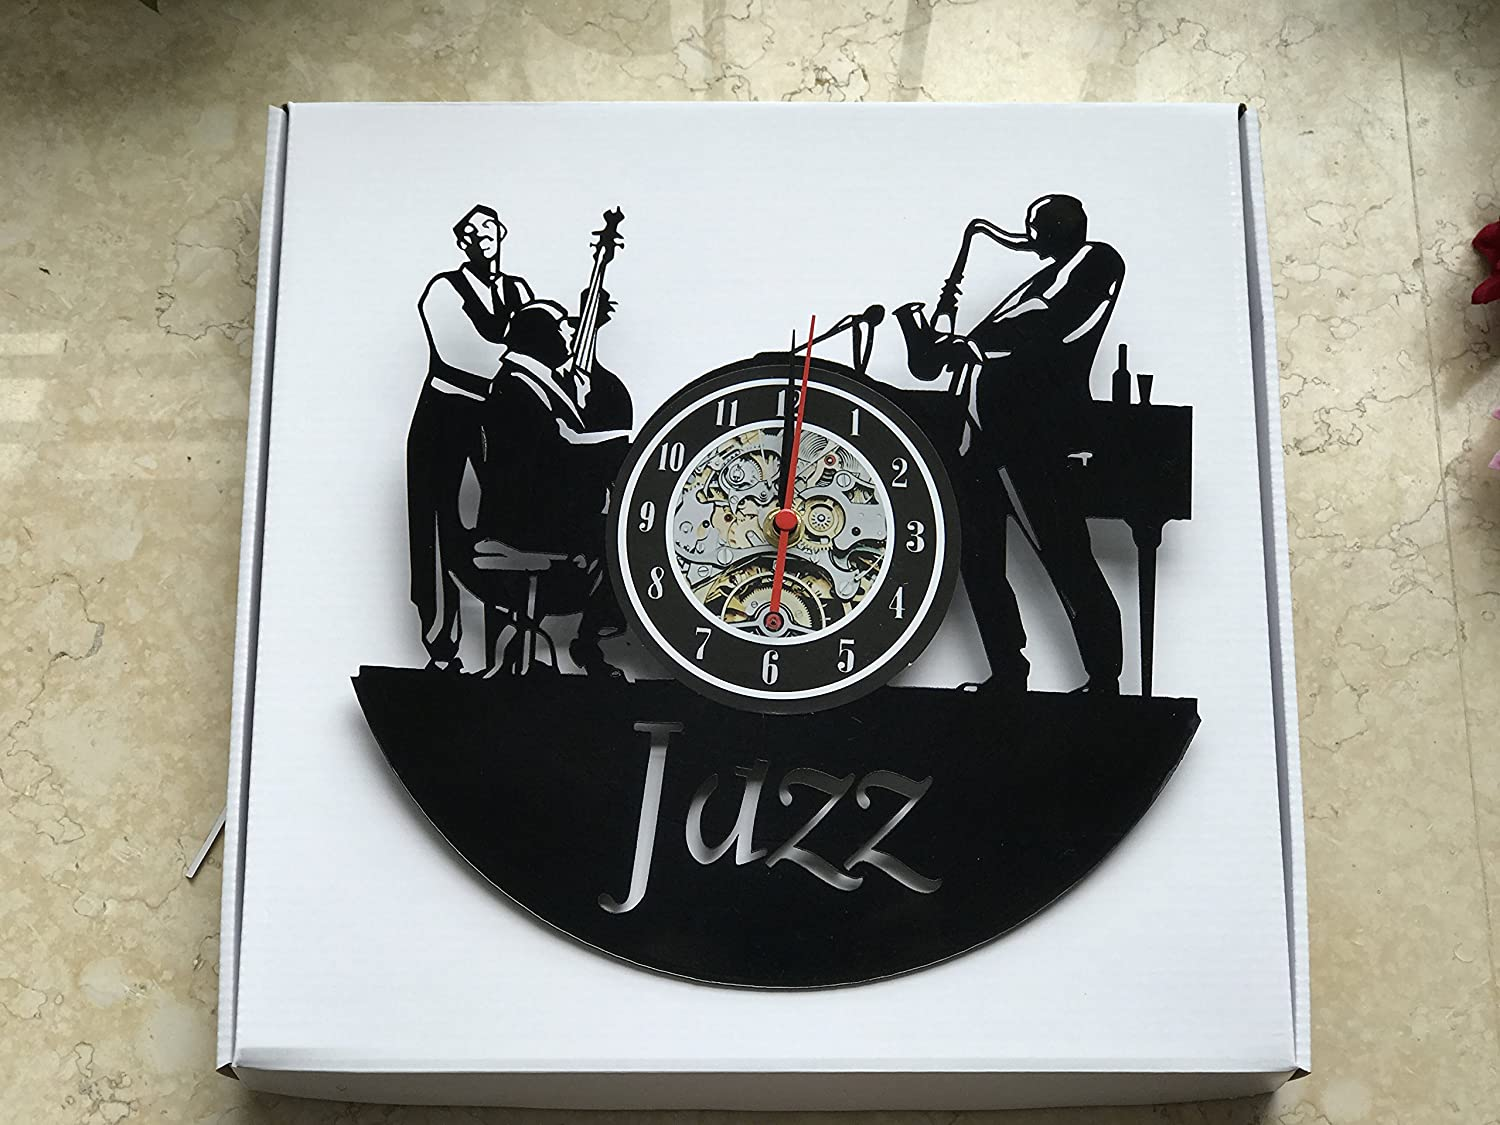 Life is a Hot Like Jazz Art Vinyl Wall Clock-Unique Home Decor That Will Suit to Any Interior – Handmade Gift for Birthday Anniversary or Any Other Occasion Gift for Him Gift for Her